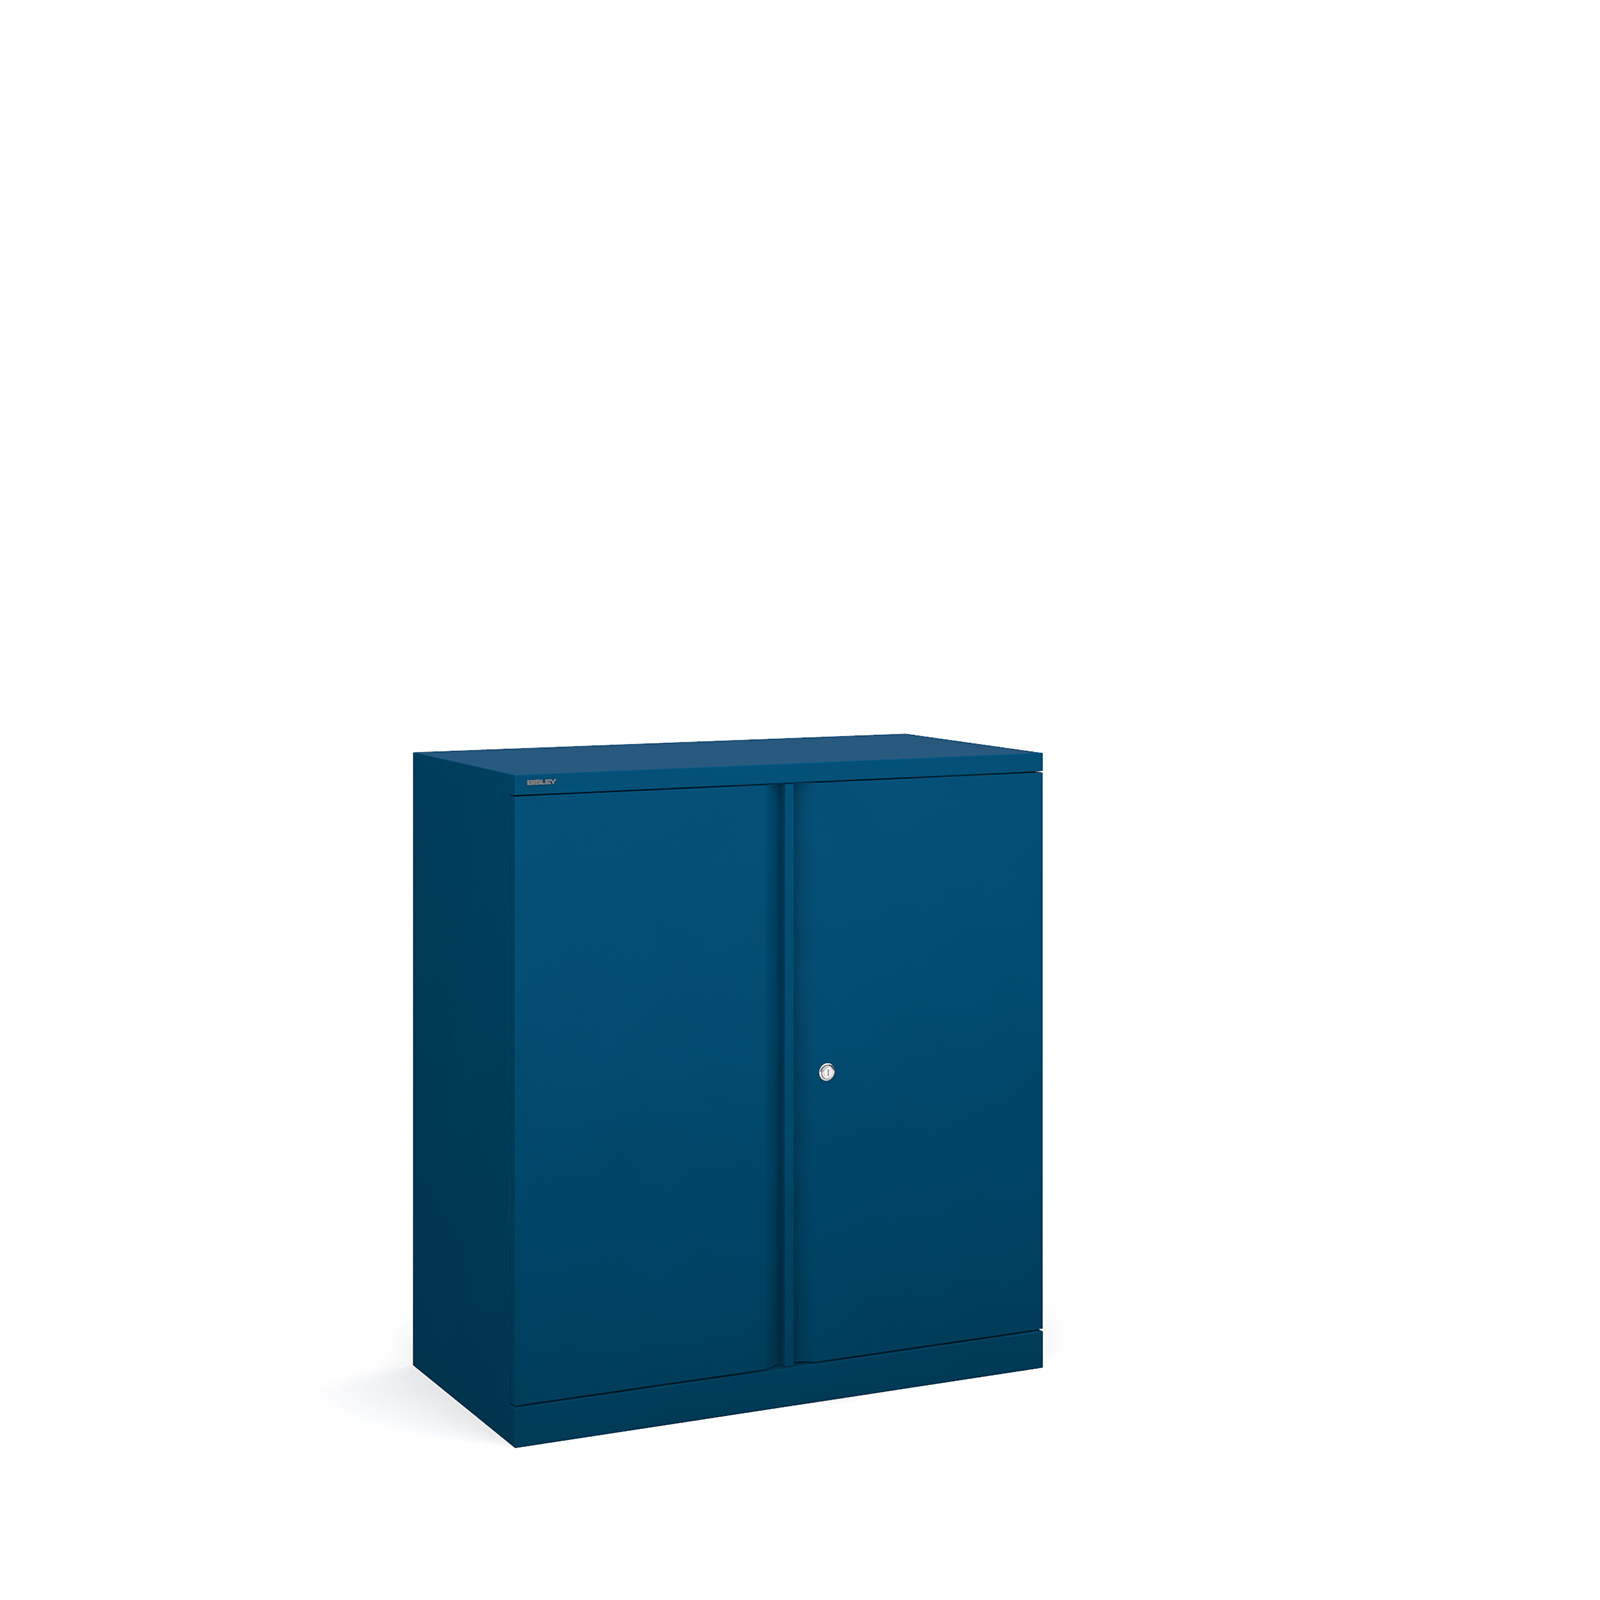 Bisley systems storage low cupboard 1000mm high - blue